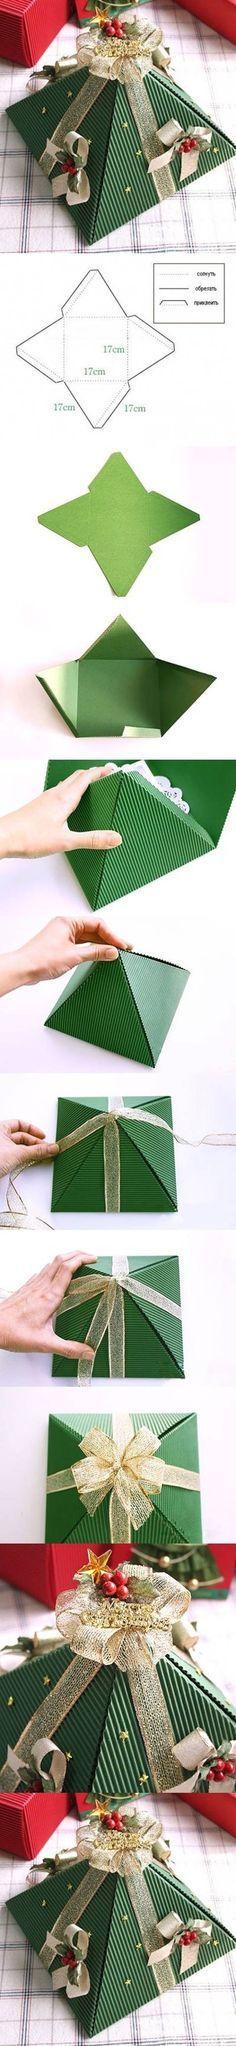 DIY Pyramid Christmas Gift Boxes